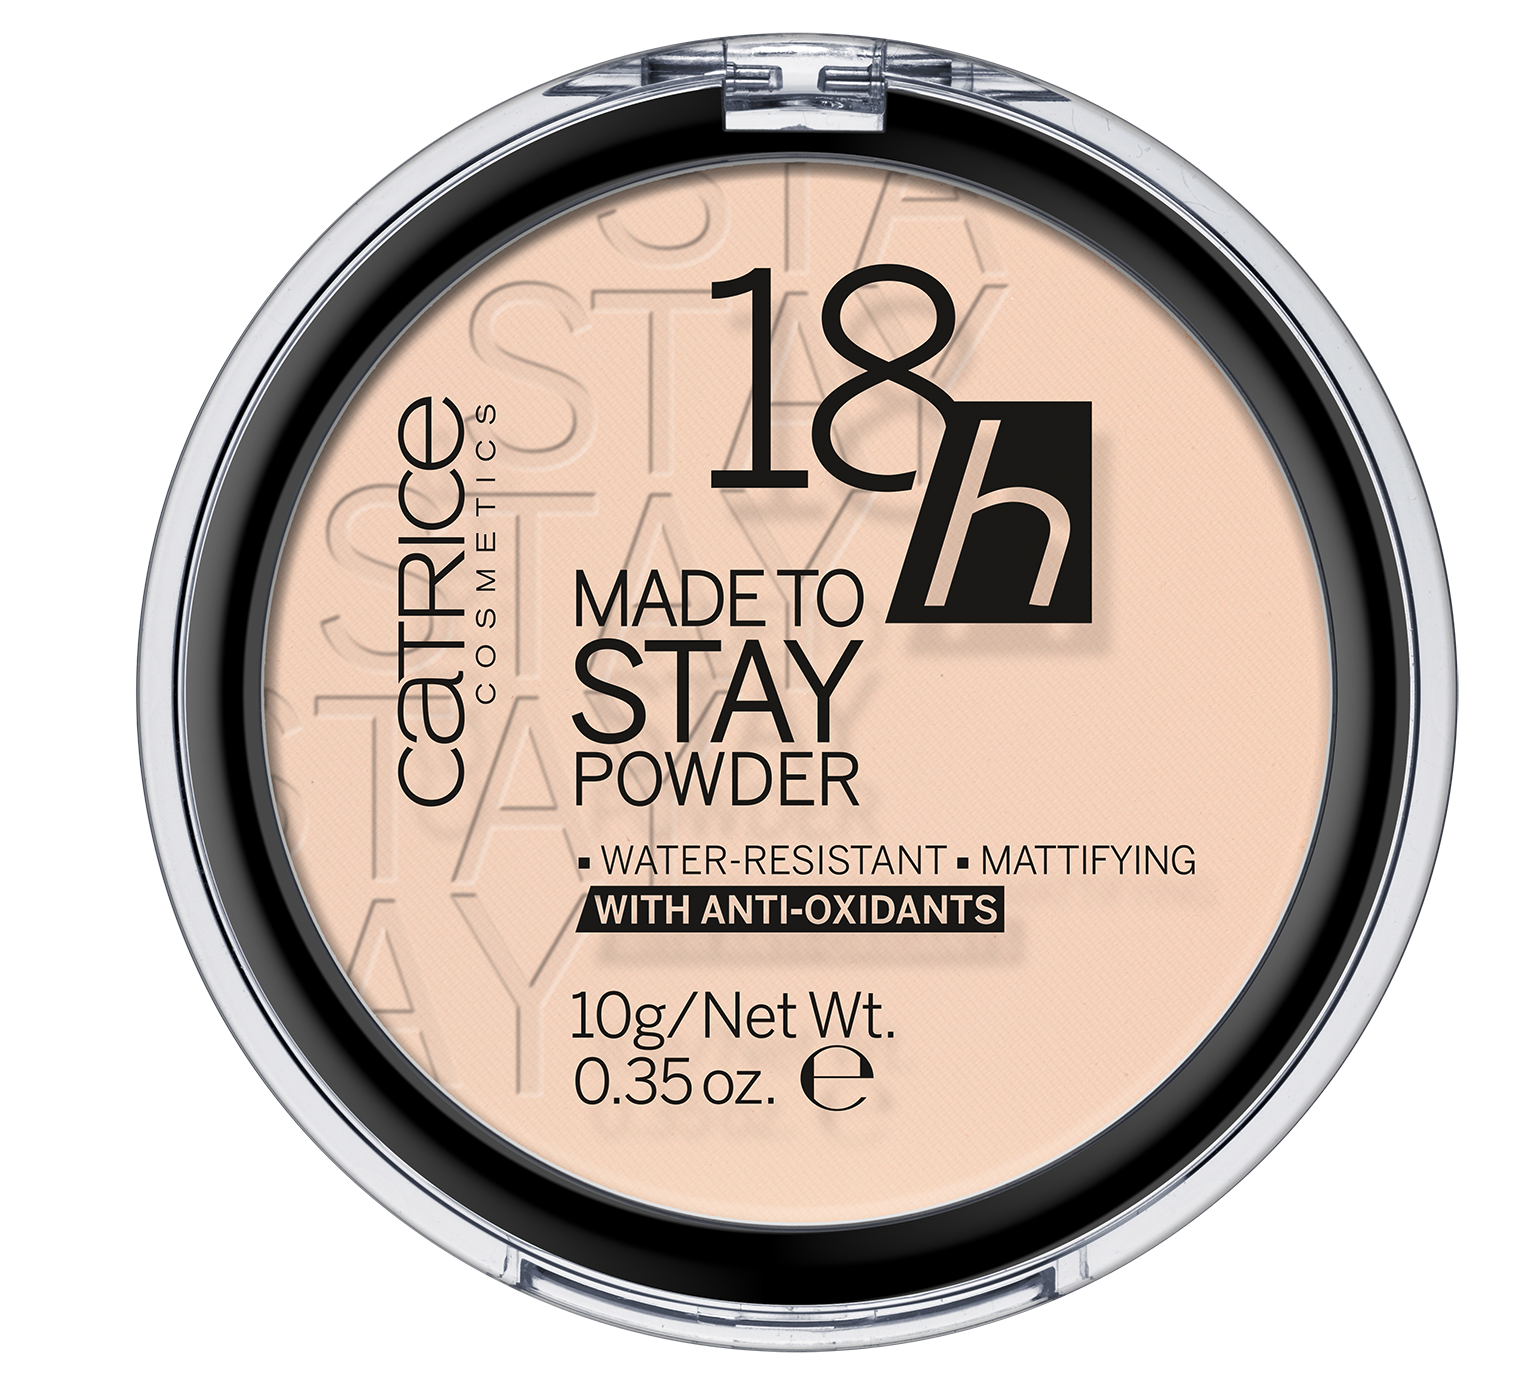 cart_18h-made-to-stay-powder_005_1477410223.png